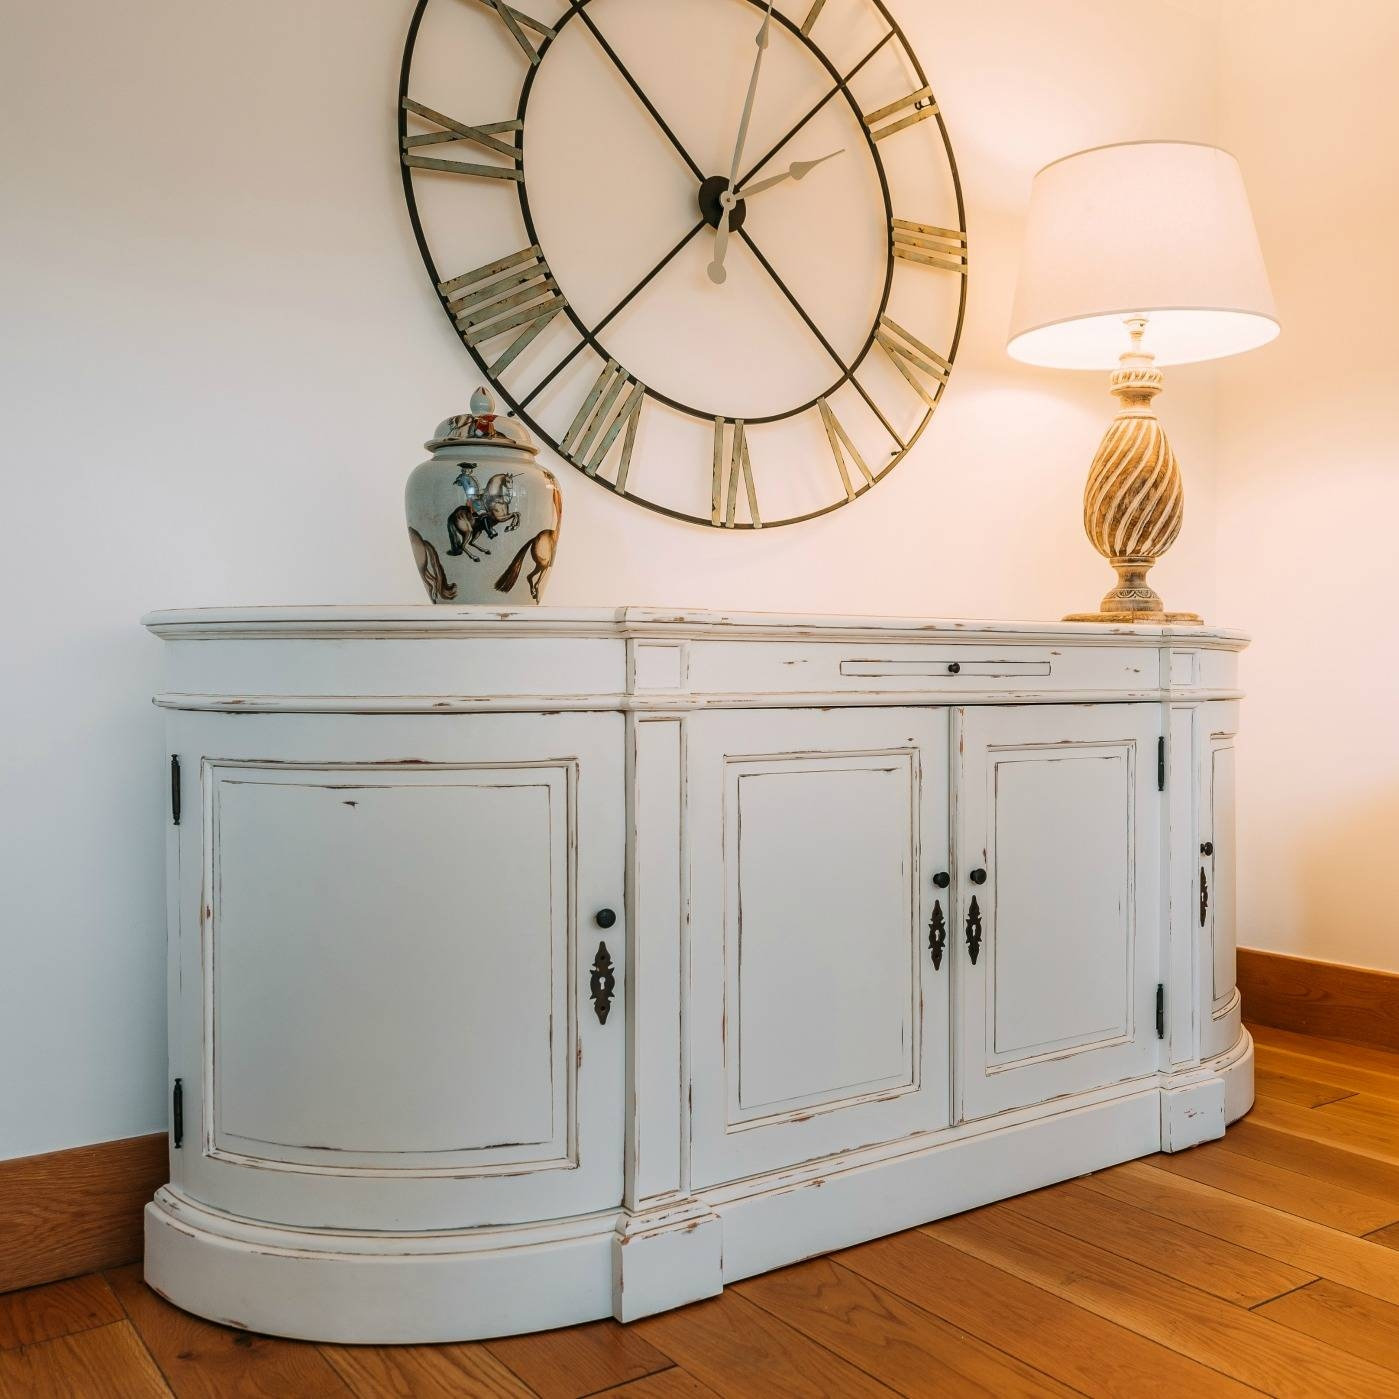 Aged French Distressed White Large Sideboard Furniture – La Maison Inside French Sideboards (View 4 of 15)